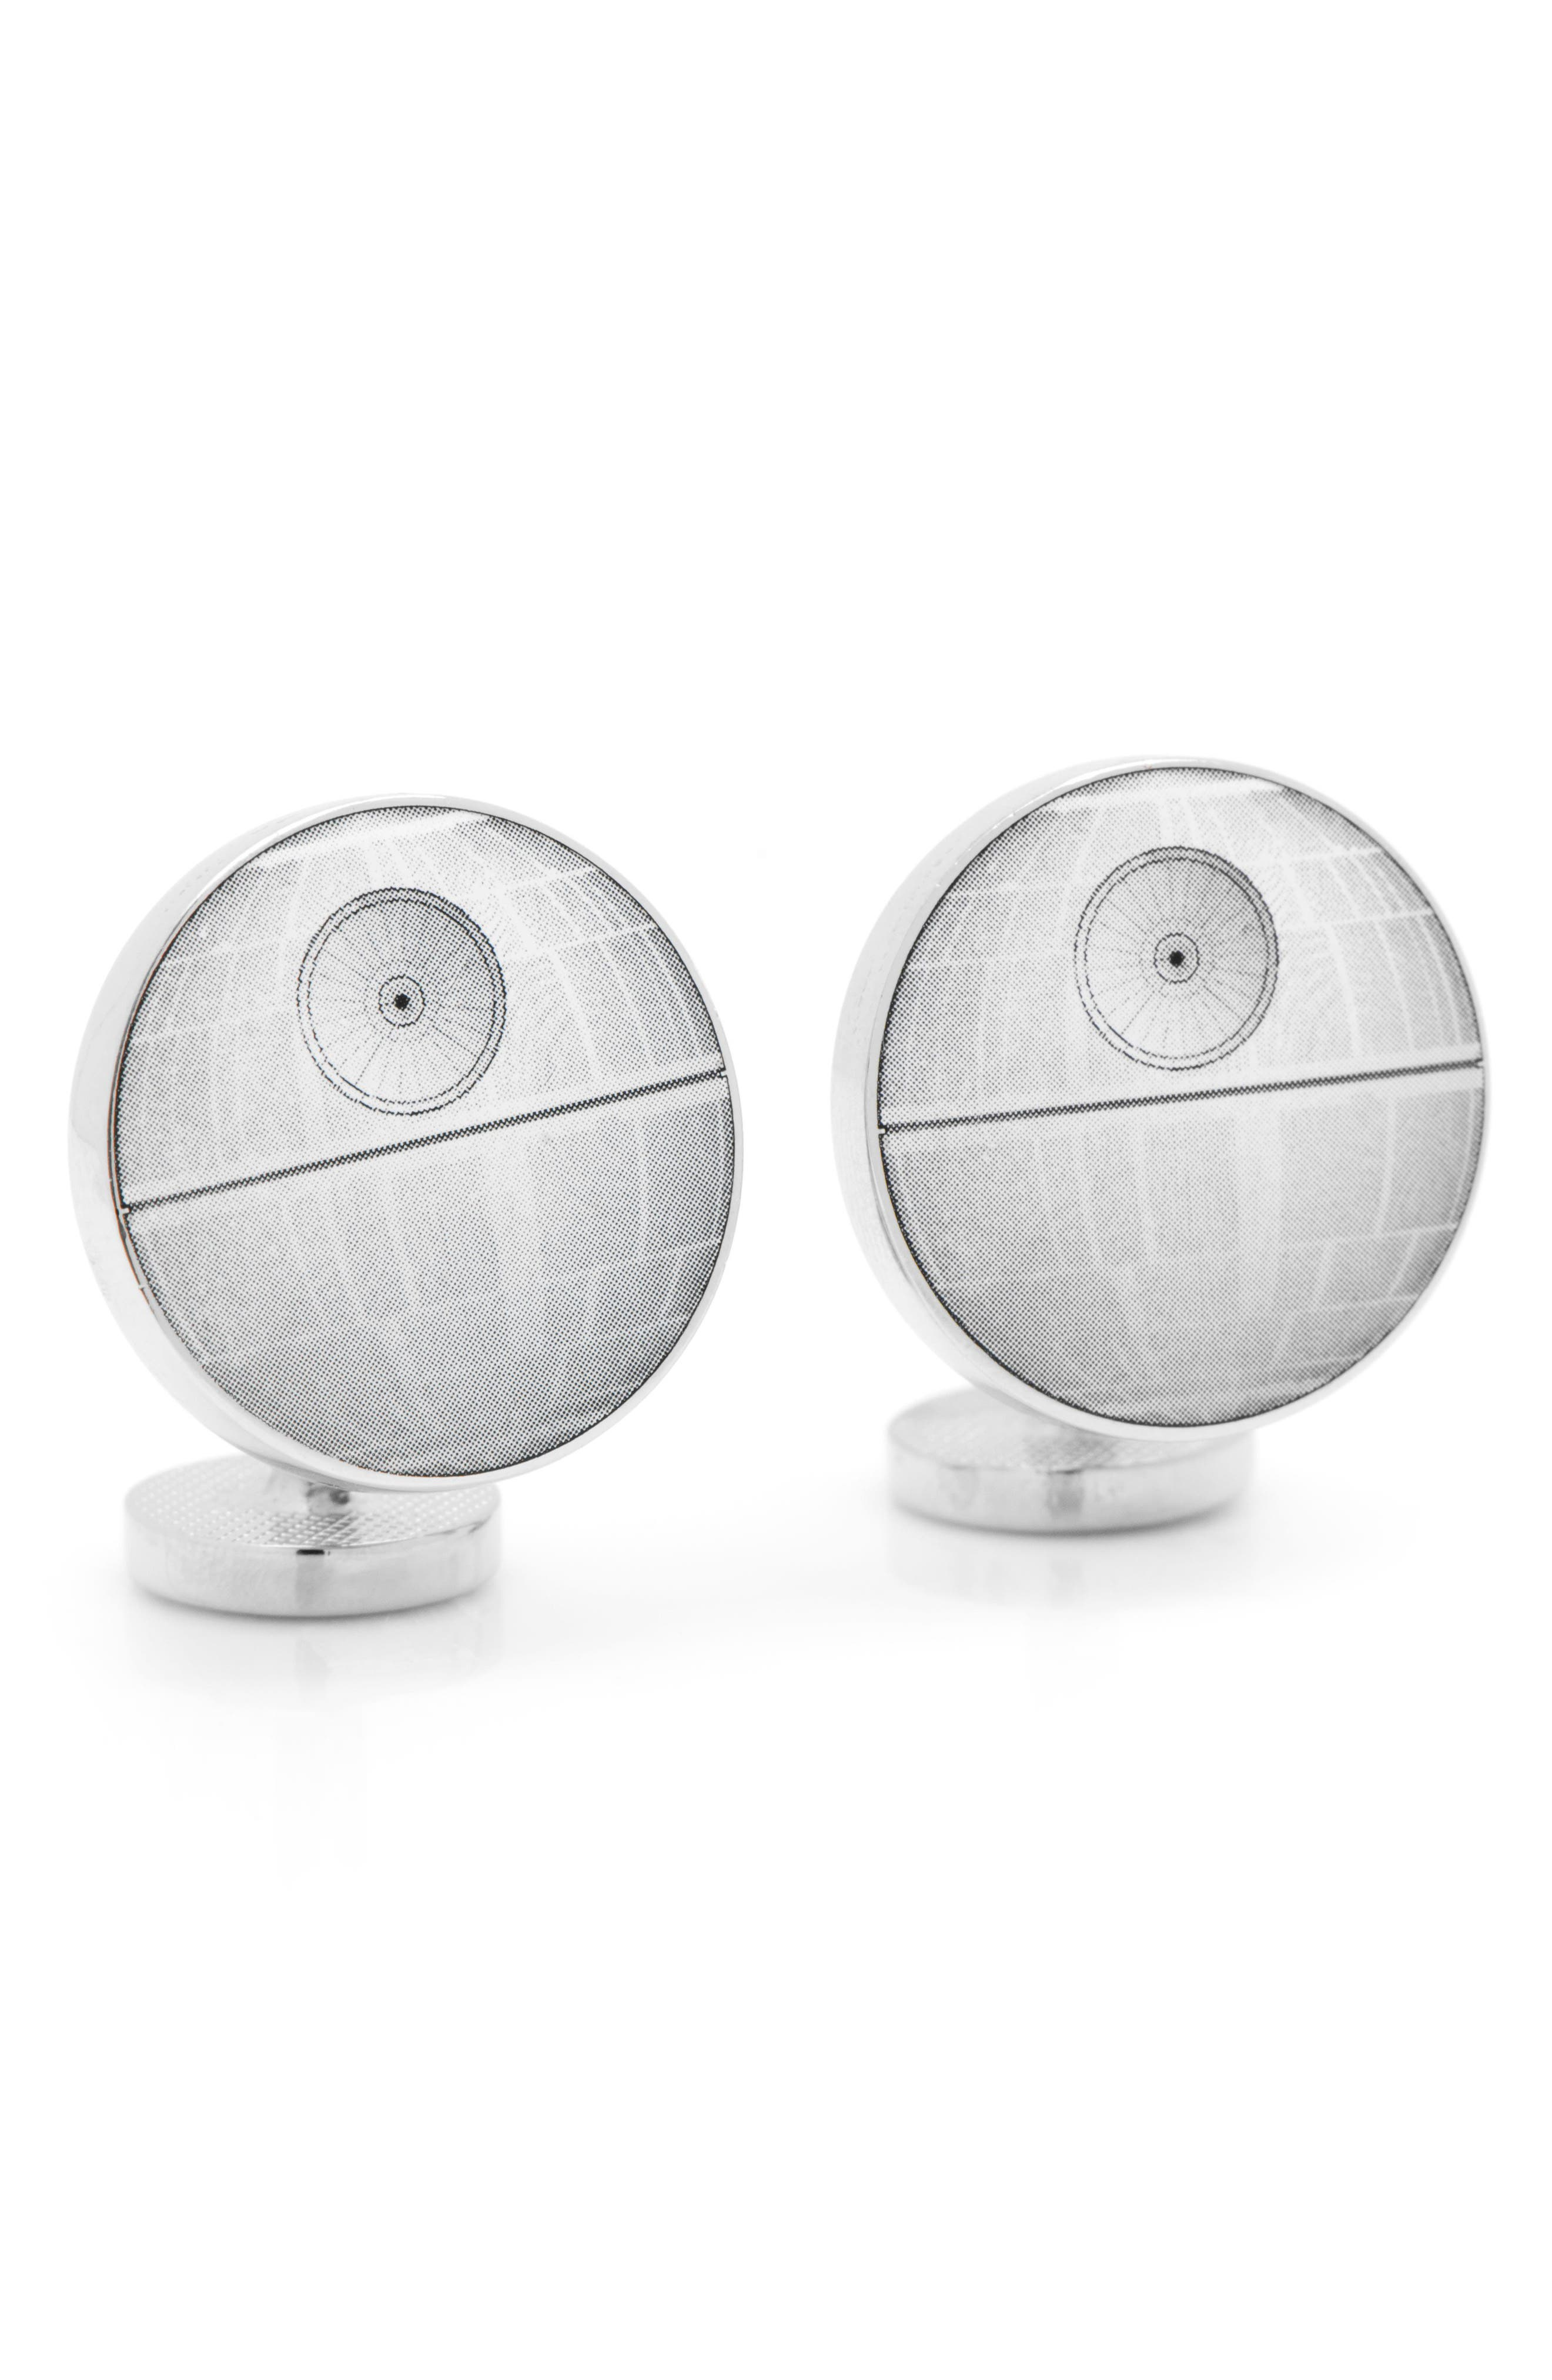 'Star Wars<sup>™</sup> - Death Star Blueprint' Cuff Links,                             Alternate thumbnail 5, color,                             020